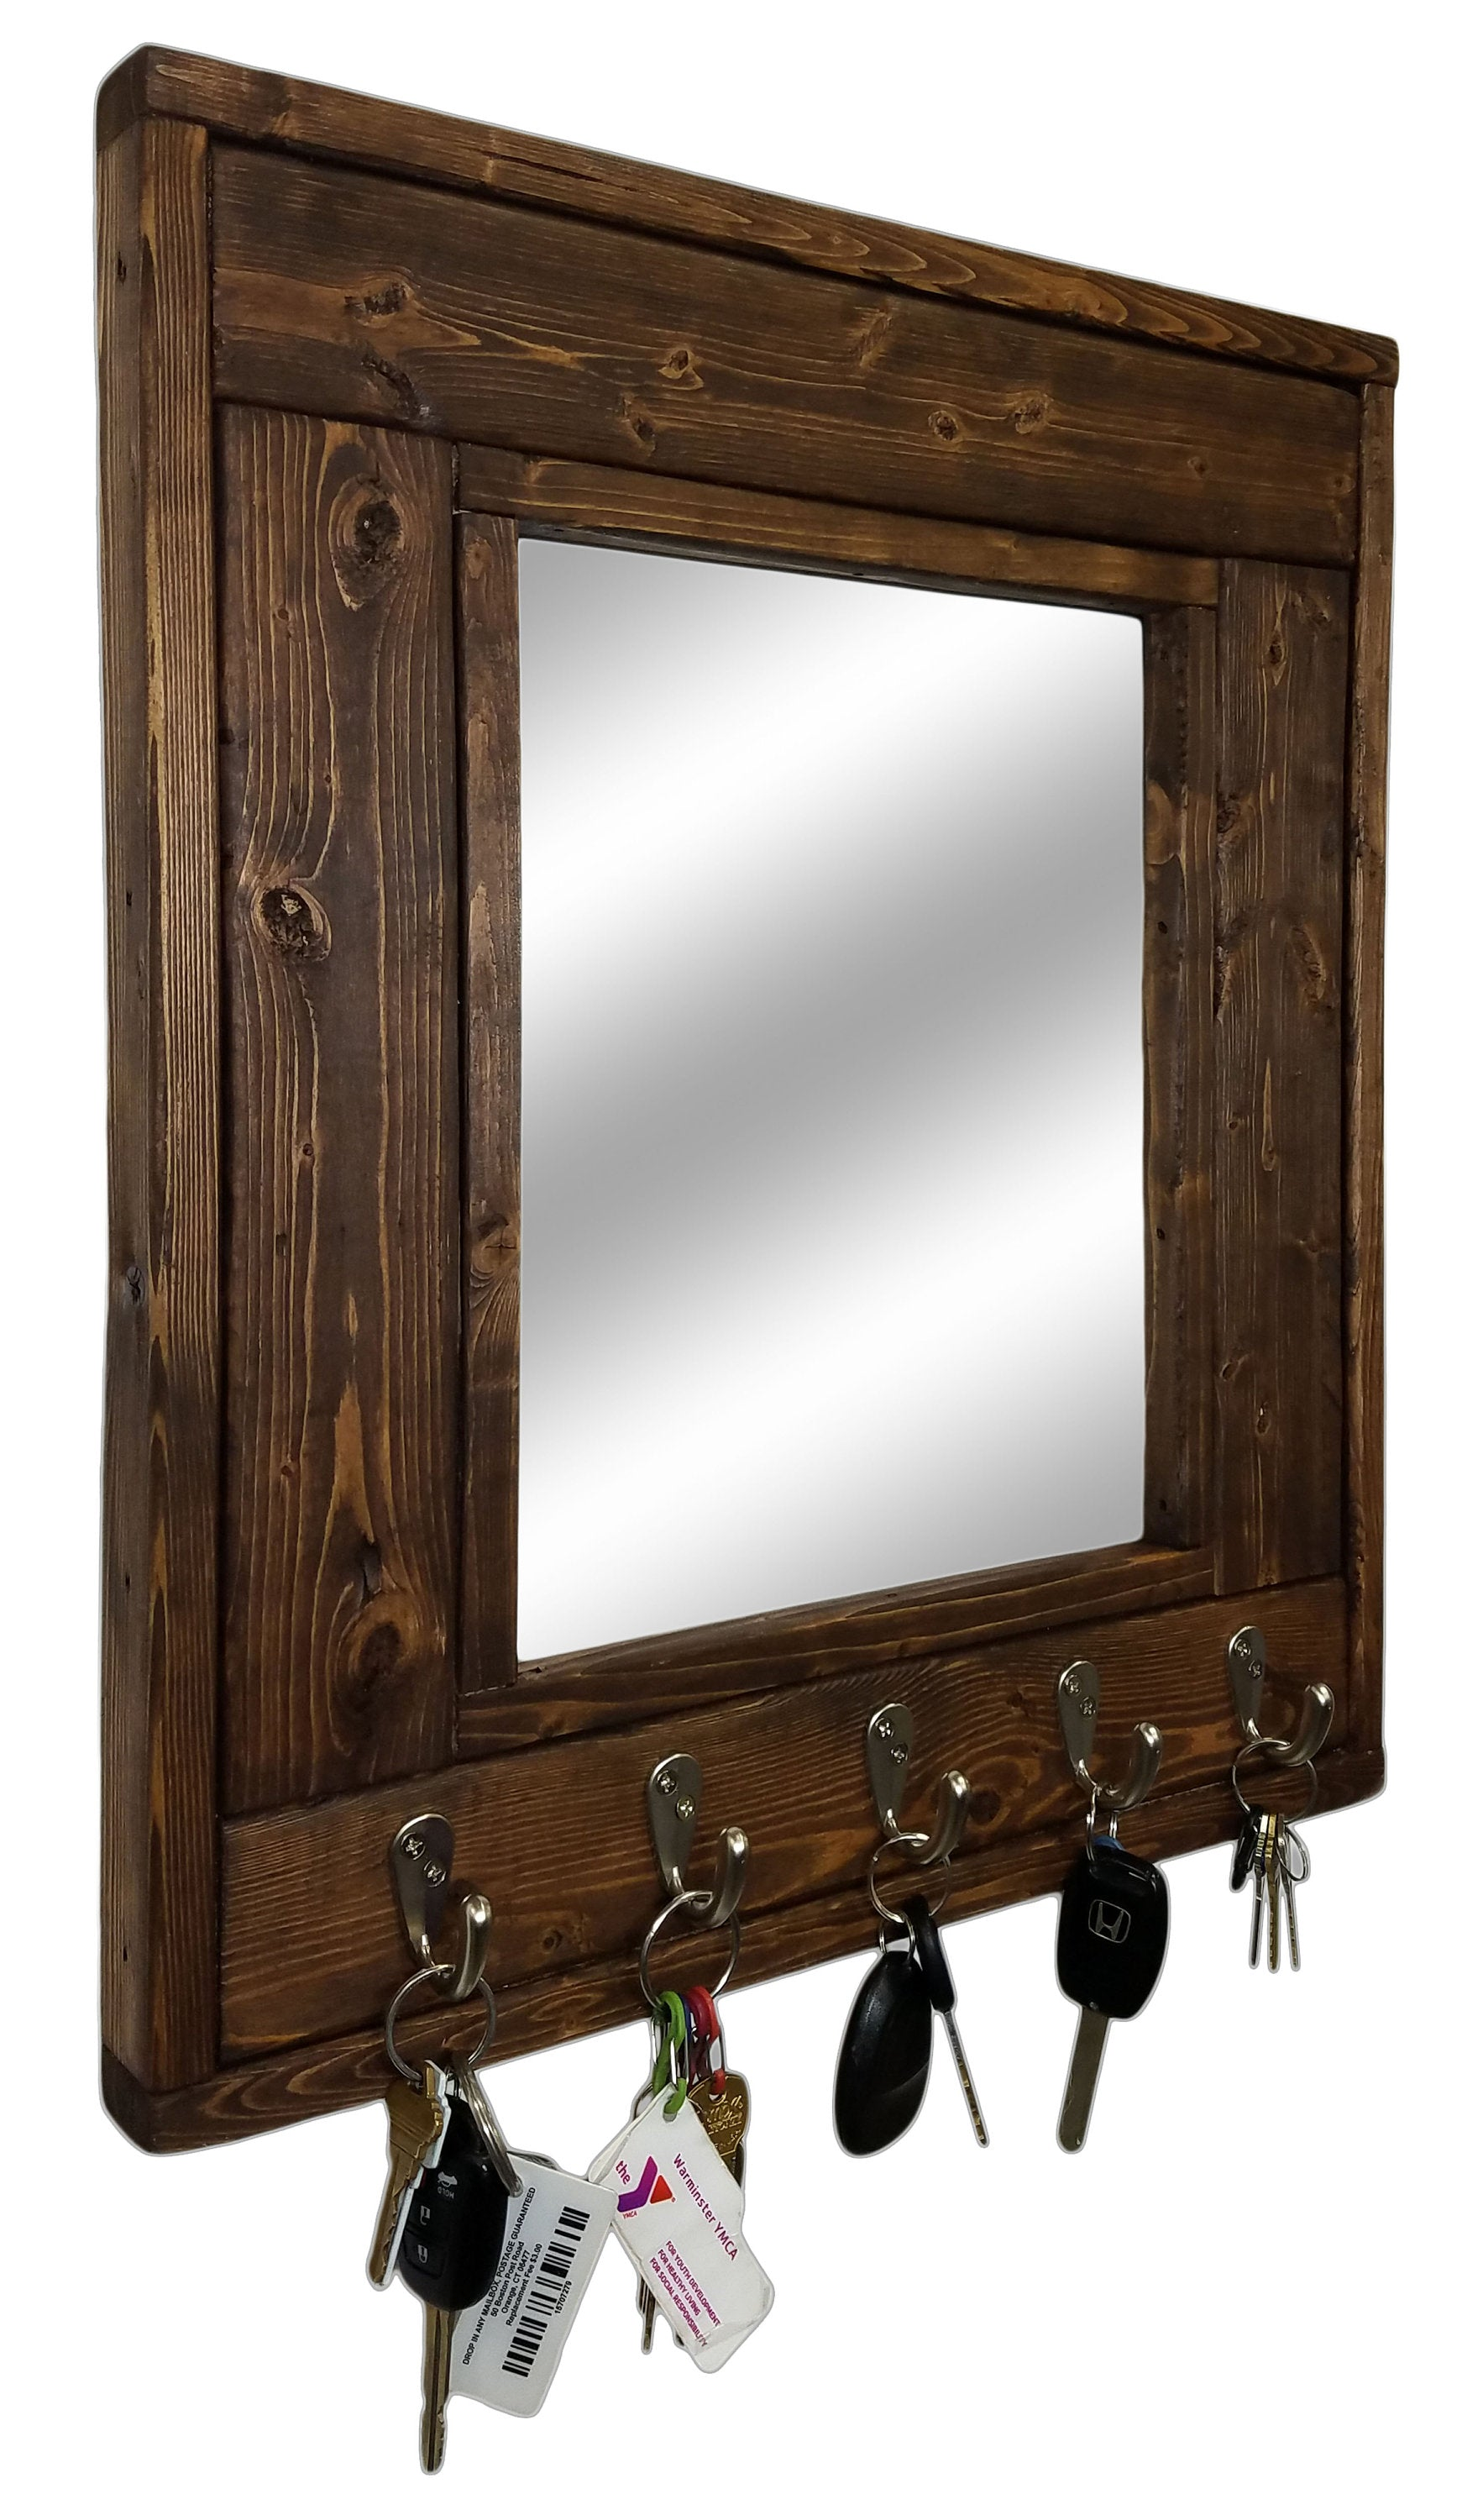 Millwood Mirror with Hooks, 20 Stain Colors - Renewed Decor & Storage